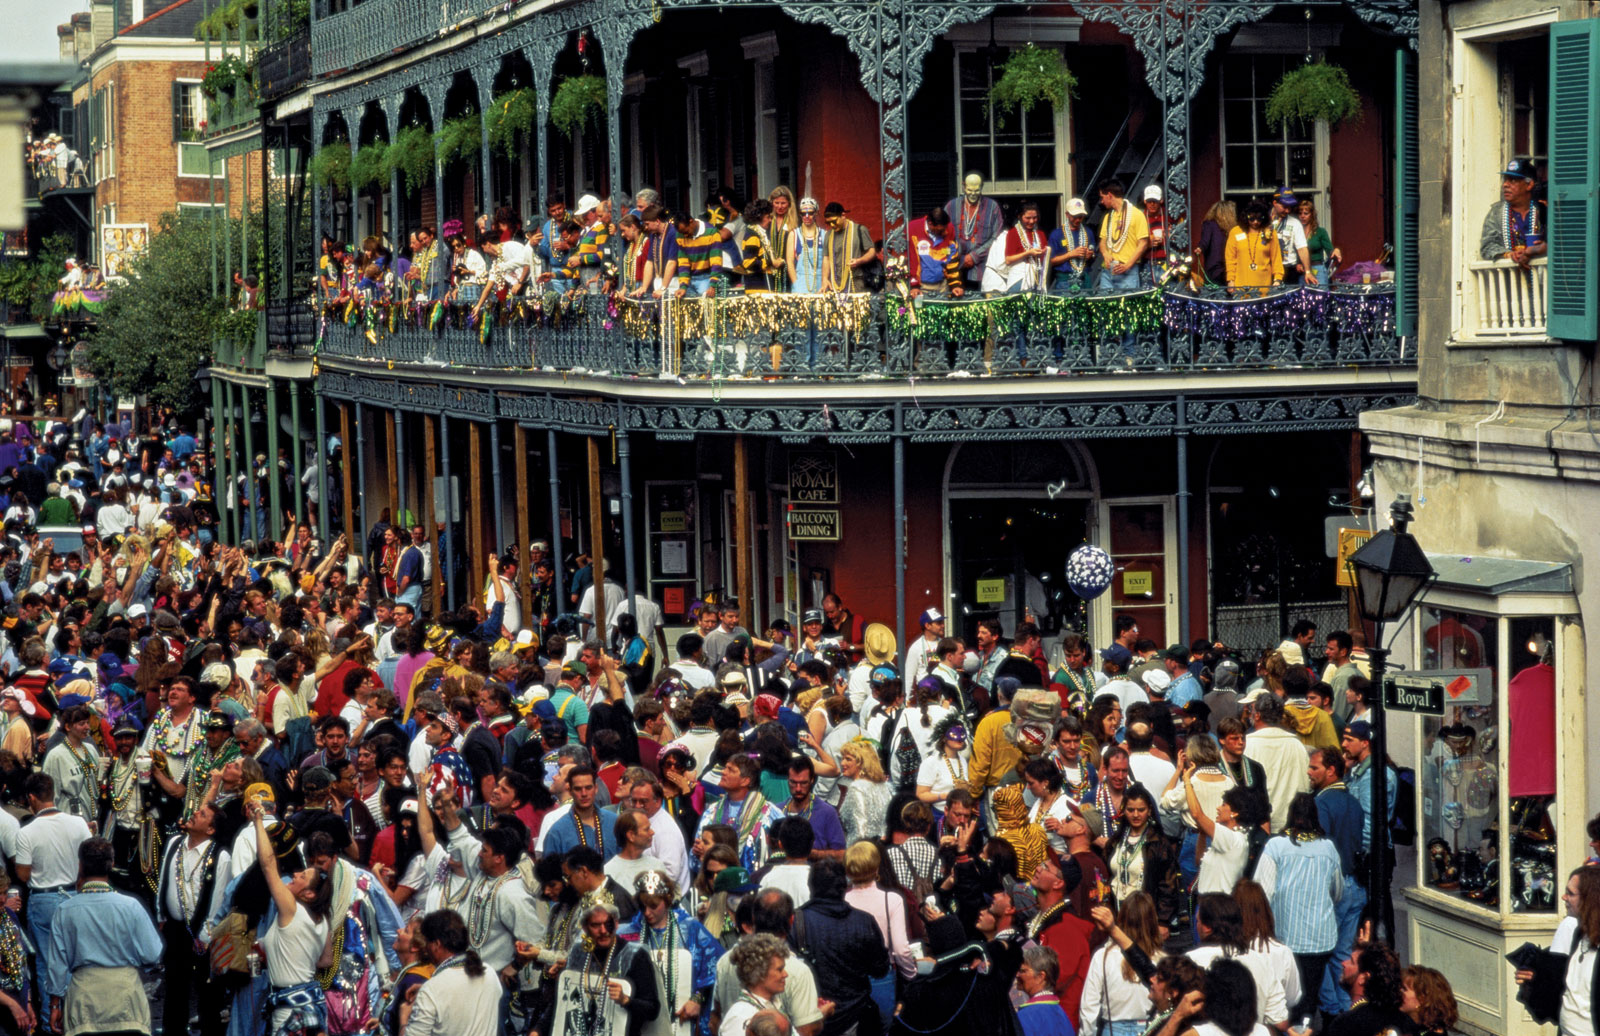 Mardi Gras in New Orleans. A full Street of dancers on the Street and on balconies.